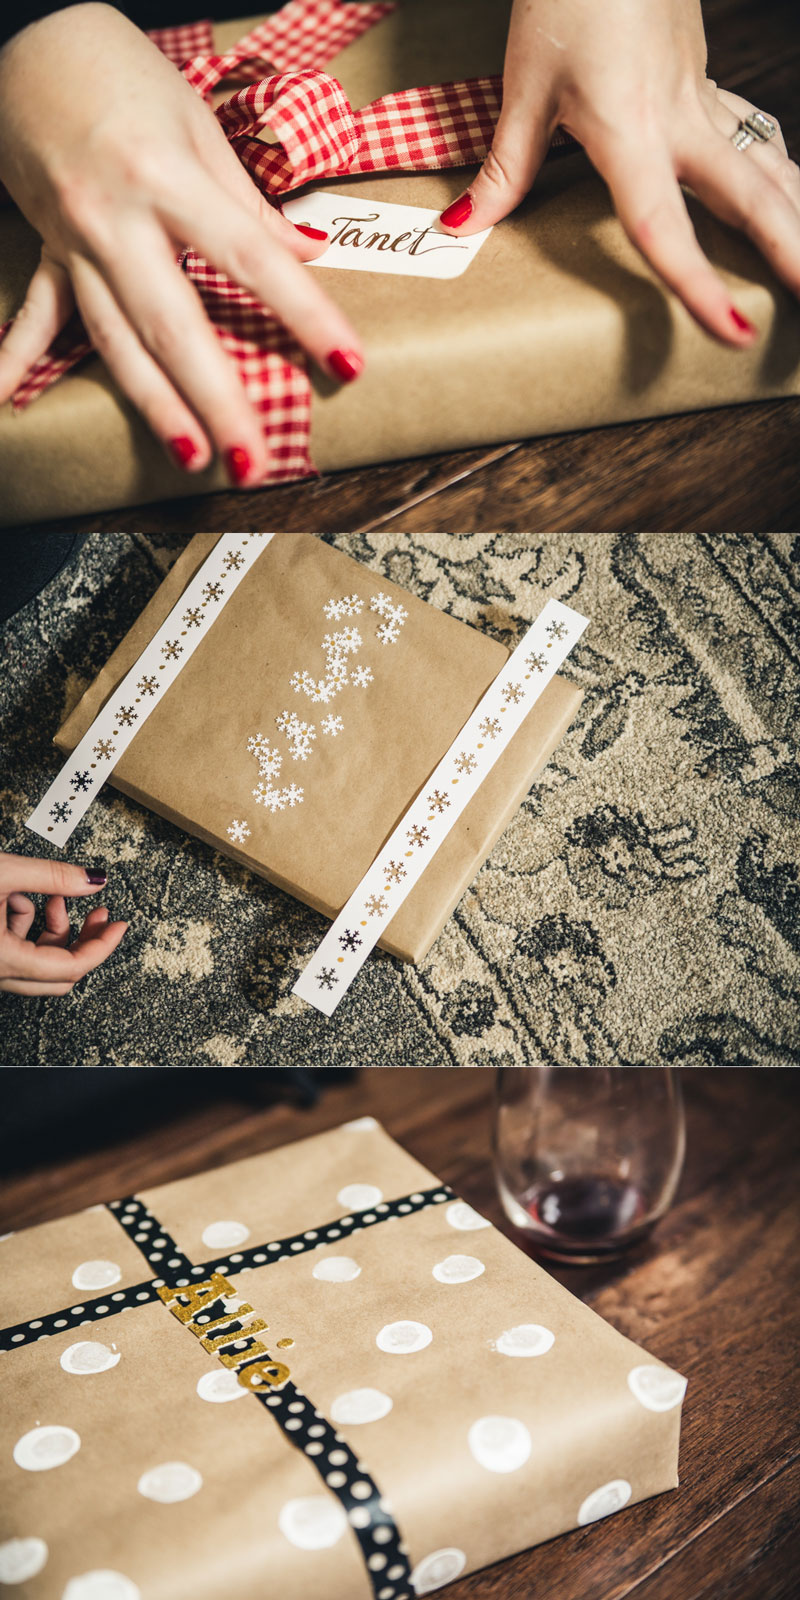 Three fun and festive Black Friday wrapping ideas